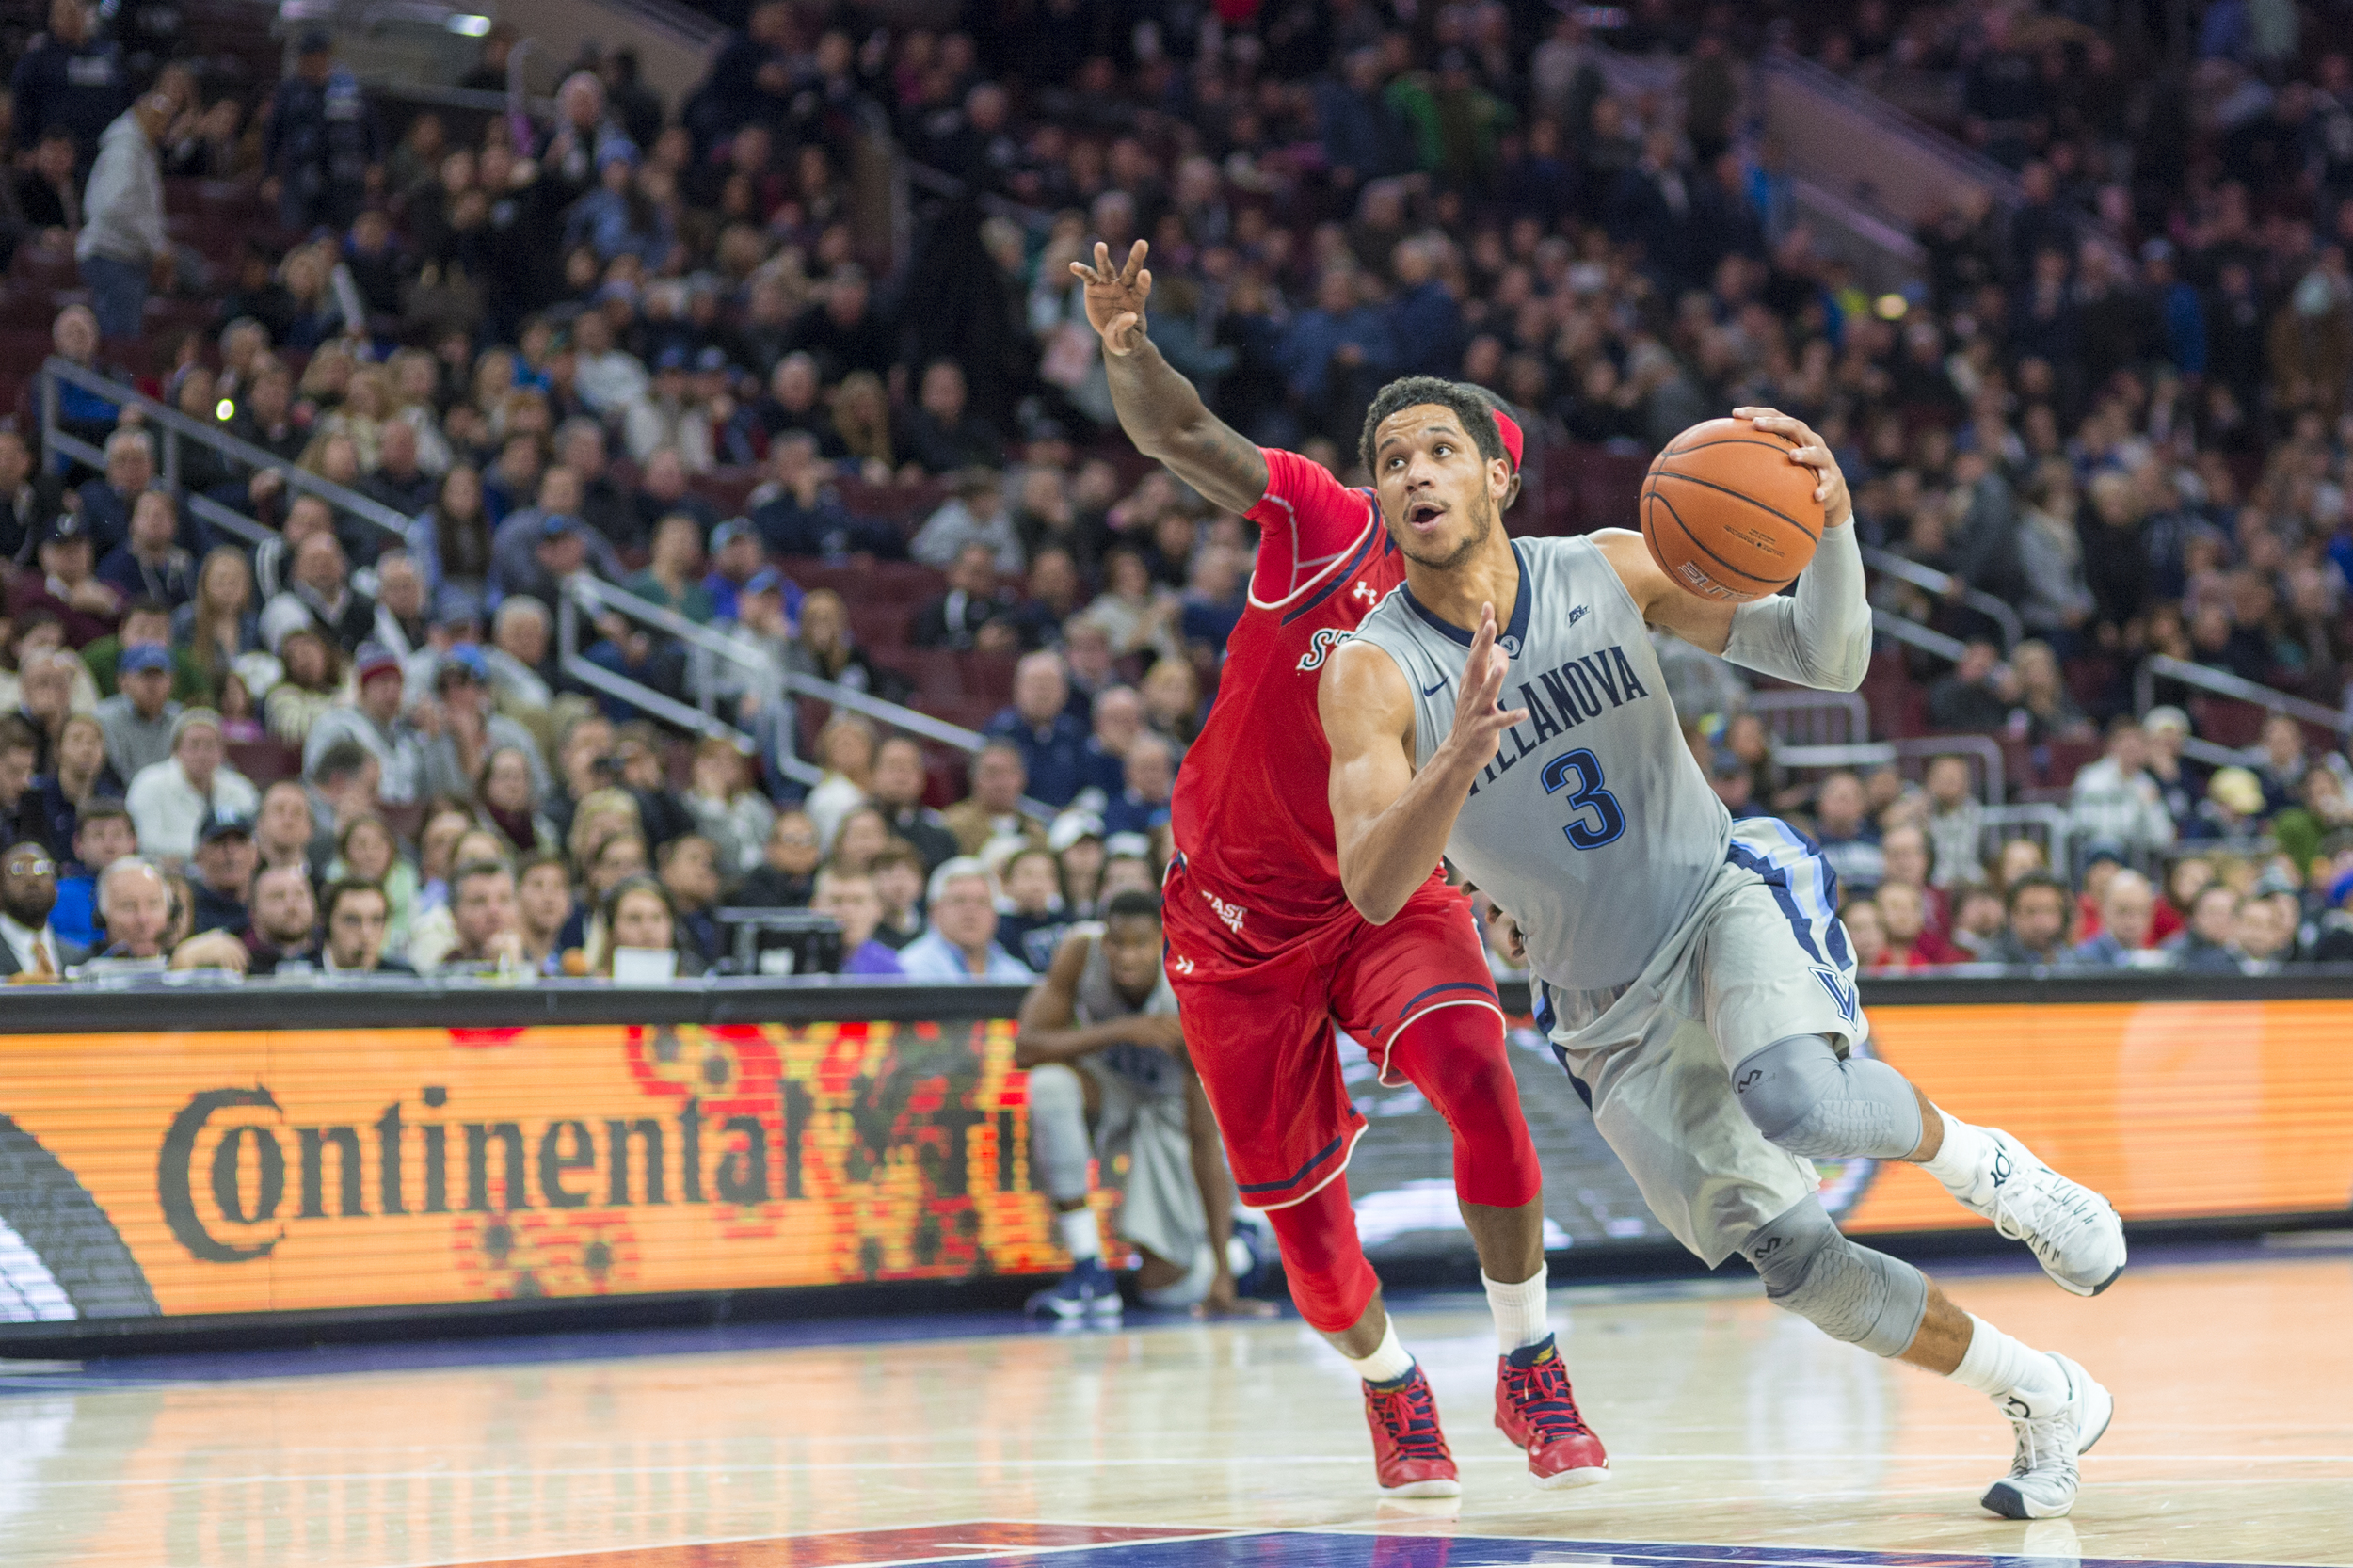 13 February 2016: Villanova Wildcats guard Josh Hart (3) in action charges into the lane during the NCAA basketball game between the St. John's Red Storm and the Villanova Wildcats played at the Wells Fargo Center in Philadelphia, PA. (Photo by Gavin Baker/Icon Sportswire)